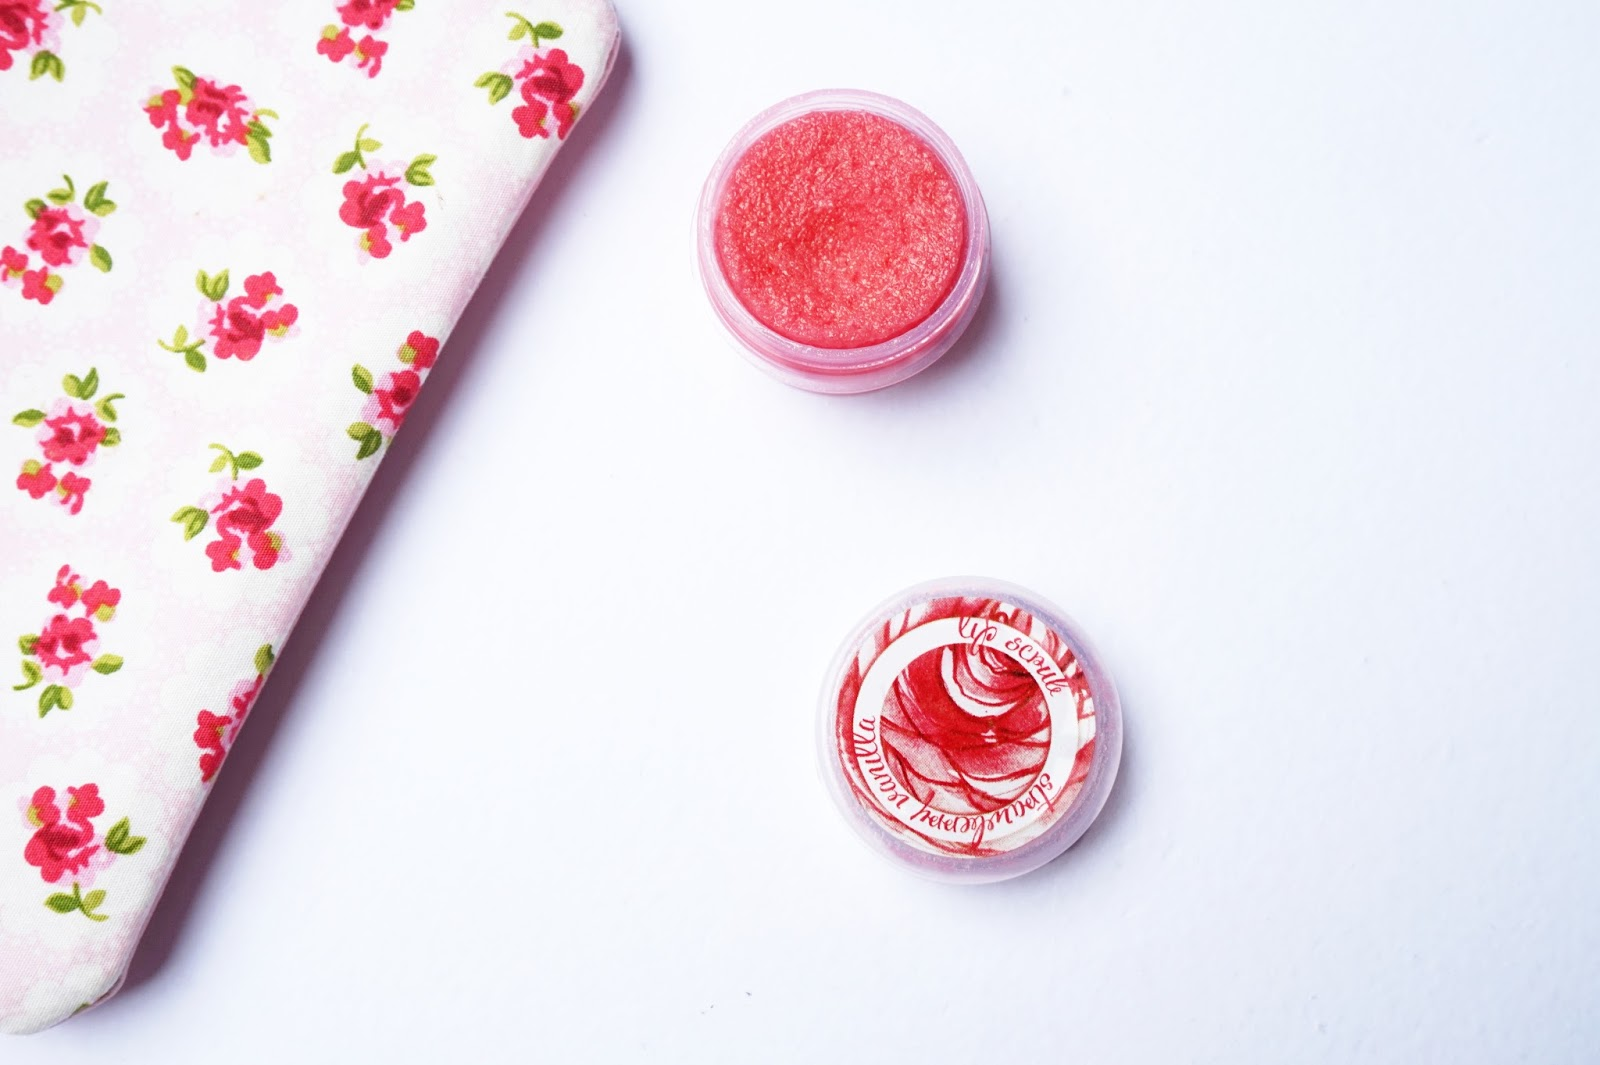 review of ellana mineral strawberry vanilla lip scrub